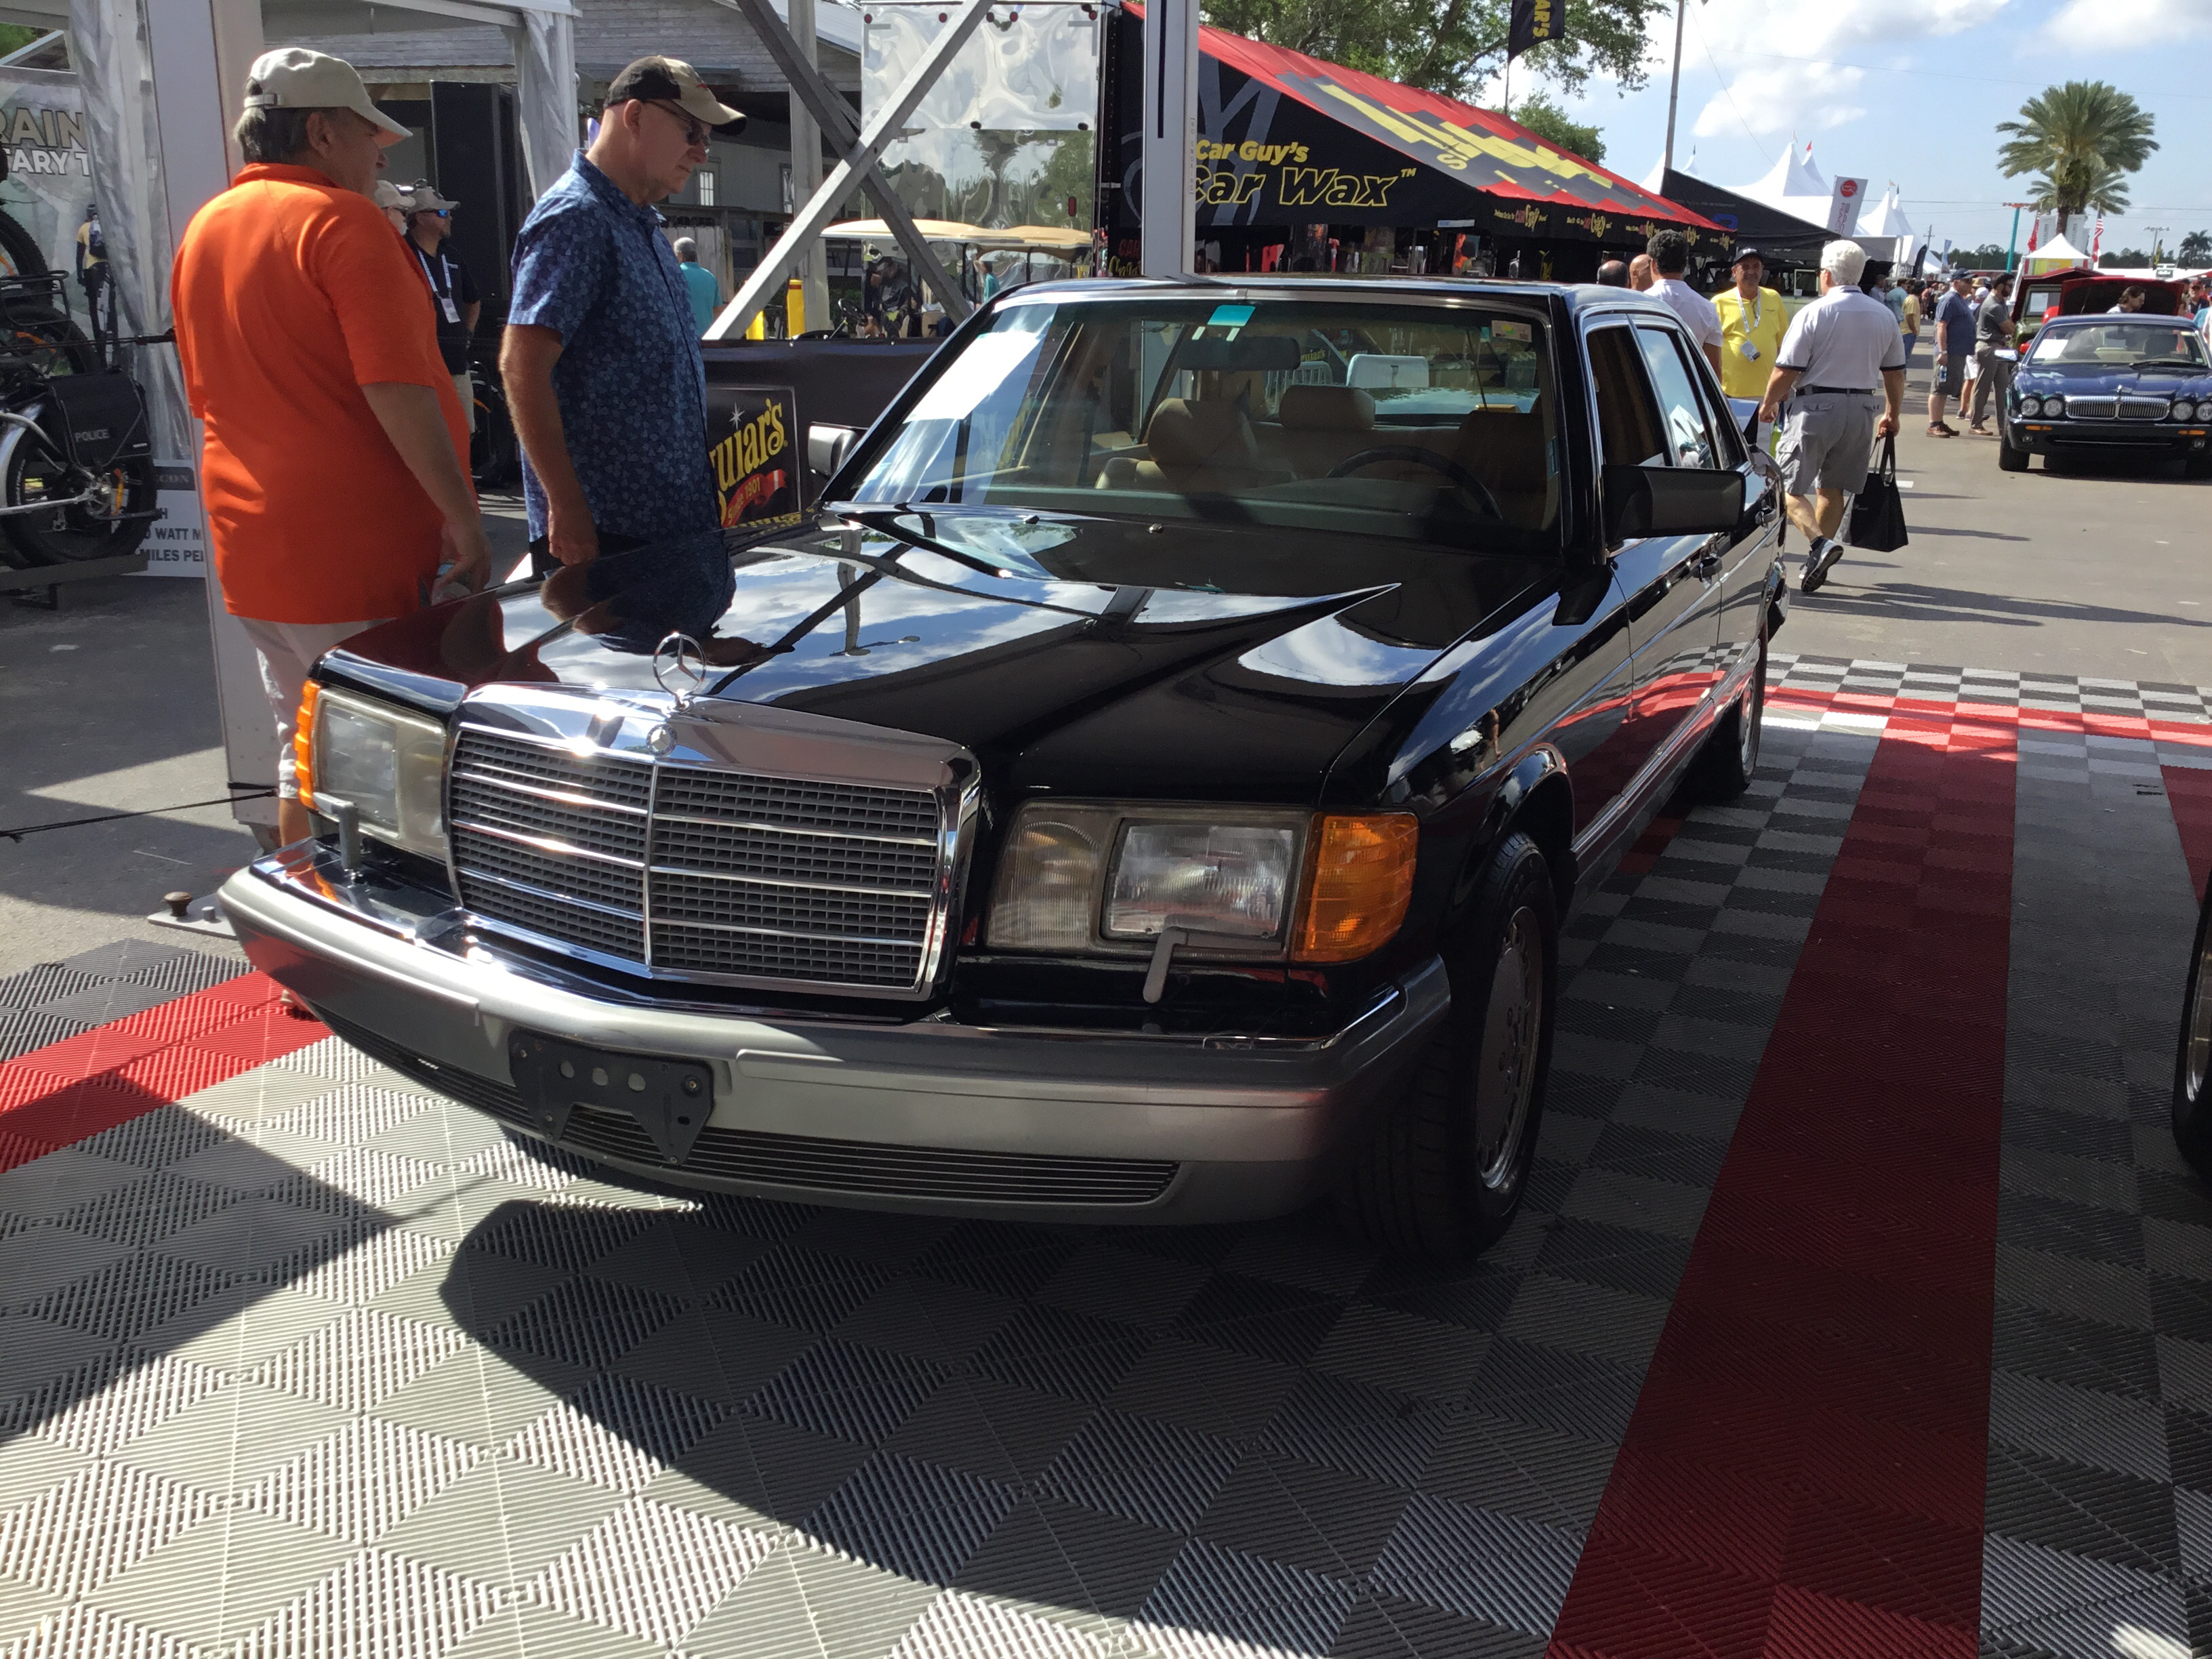 1989 Mercedes-Benz 300SE Values | Hagerty Valuation Tool®